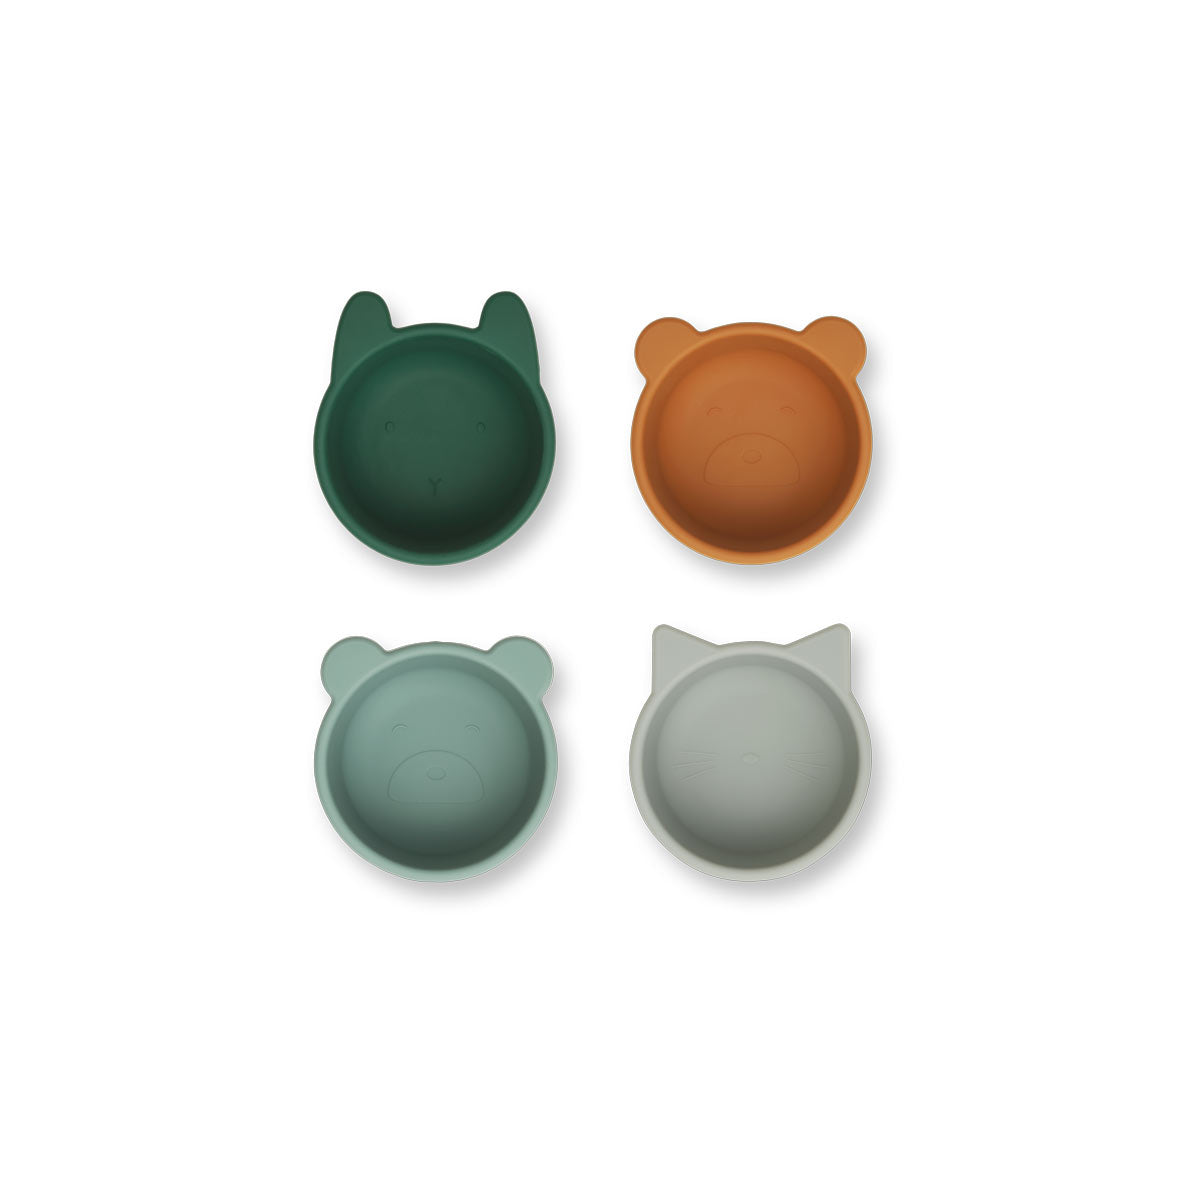 Malene Silicone Bowl 4 Pack - Green multi mix